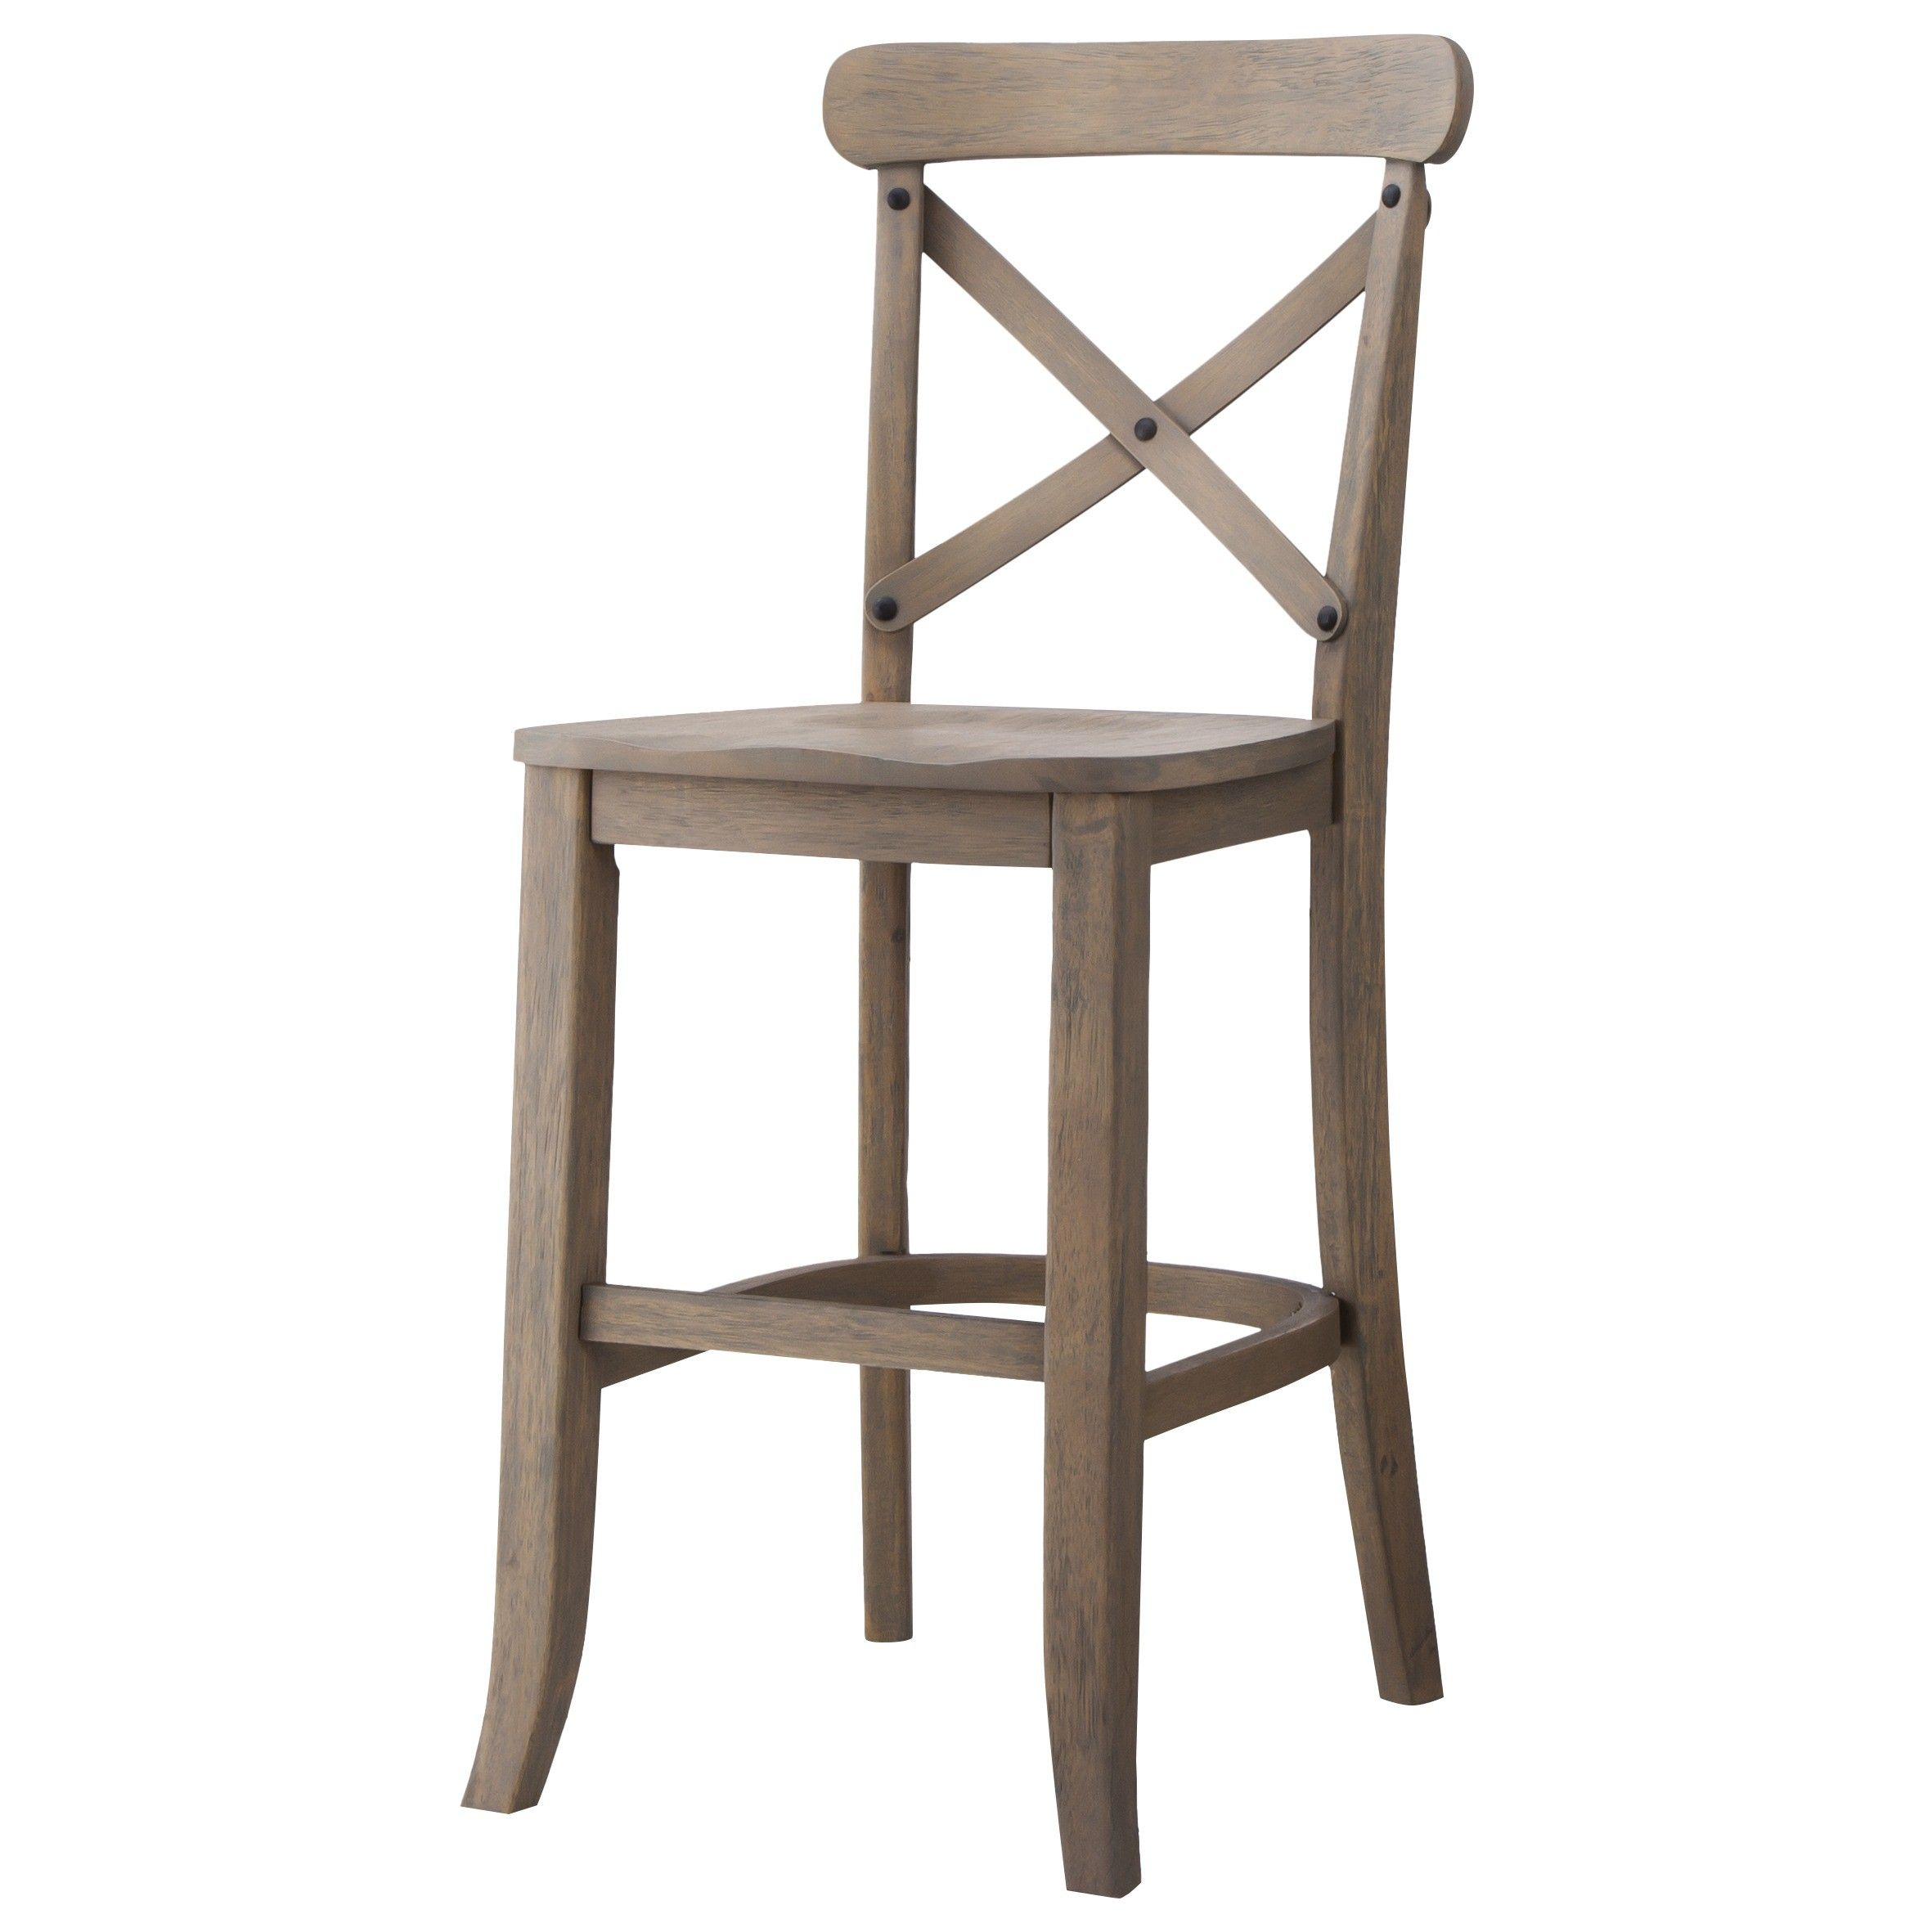 24 French Country X Back Counter Stool 24 Counter Stools Counter Stools Stools For Kitchen Island